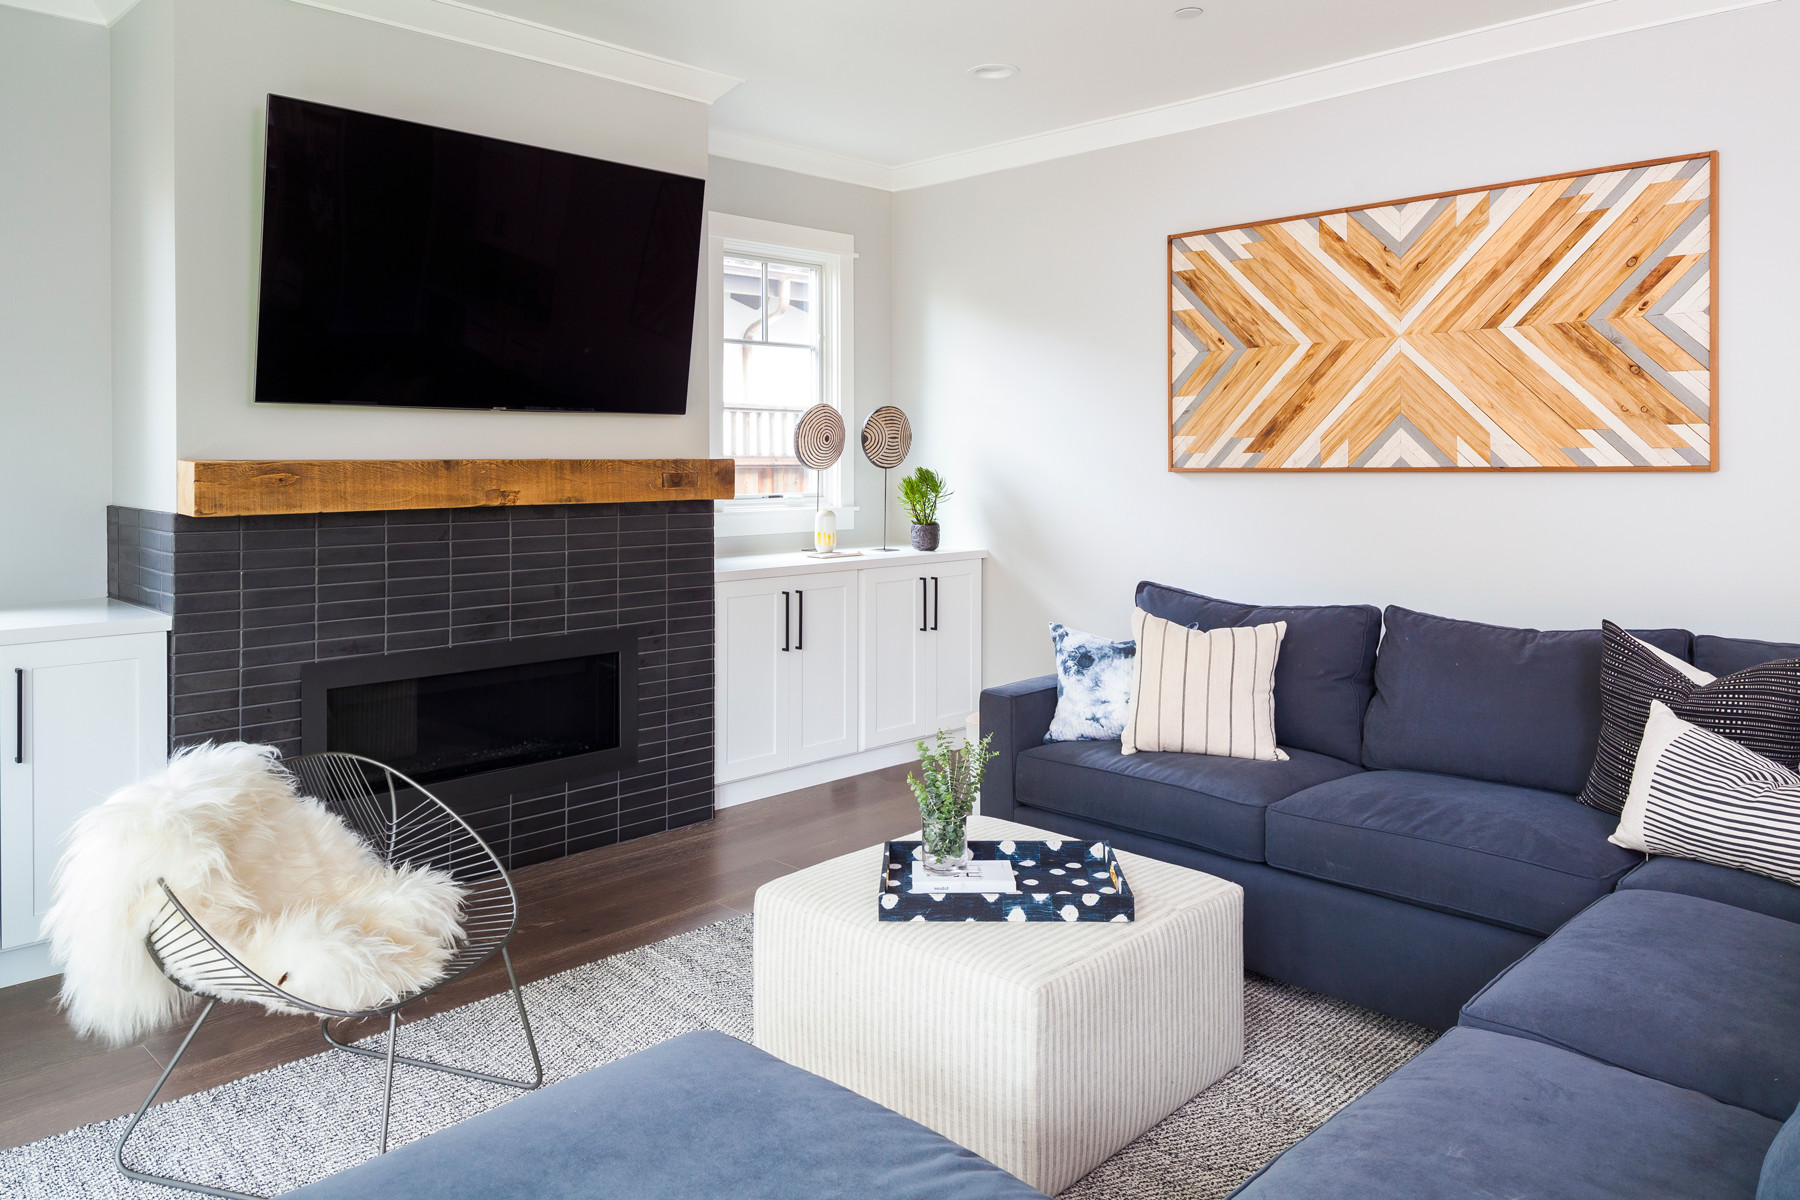 A custom-tiled fireplace is a greatspot for the family to gather. The space also features a standout art piece by woodworker Alexsandra Zee.